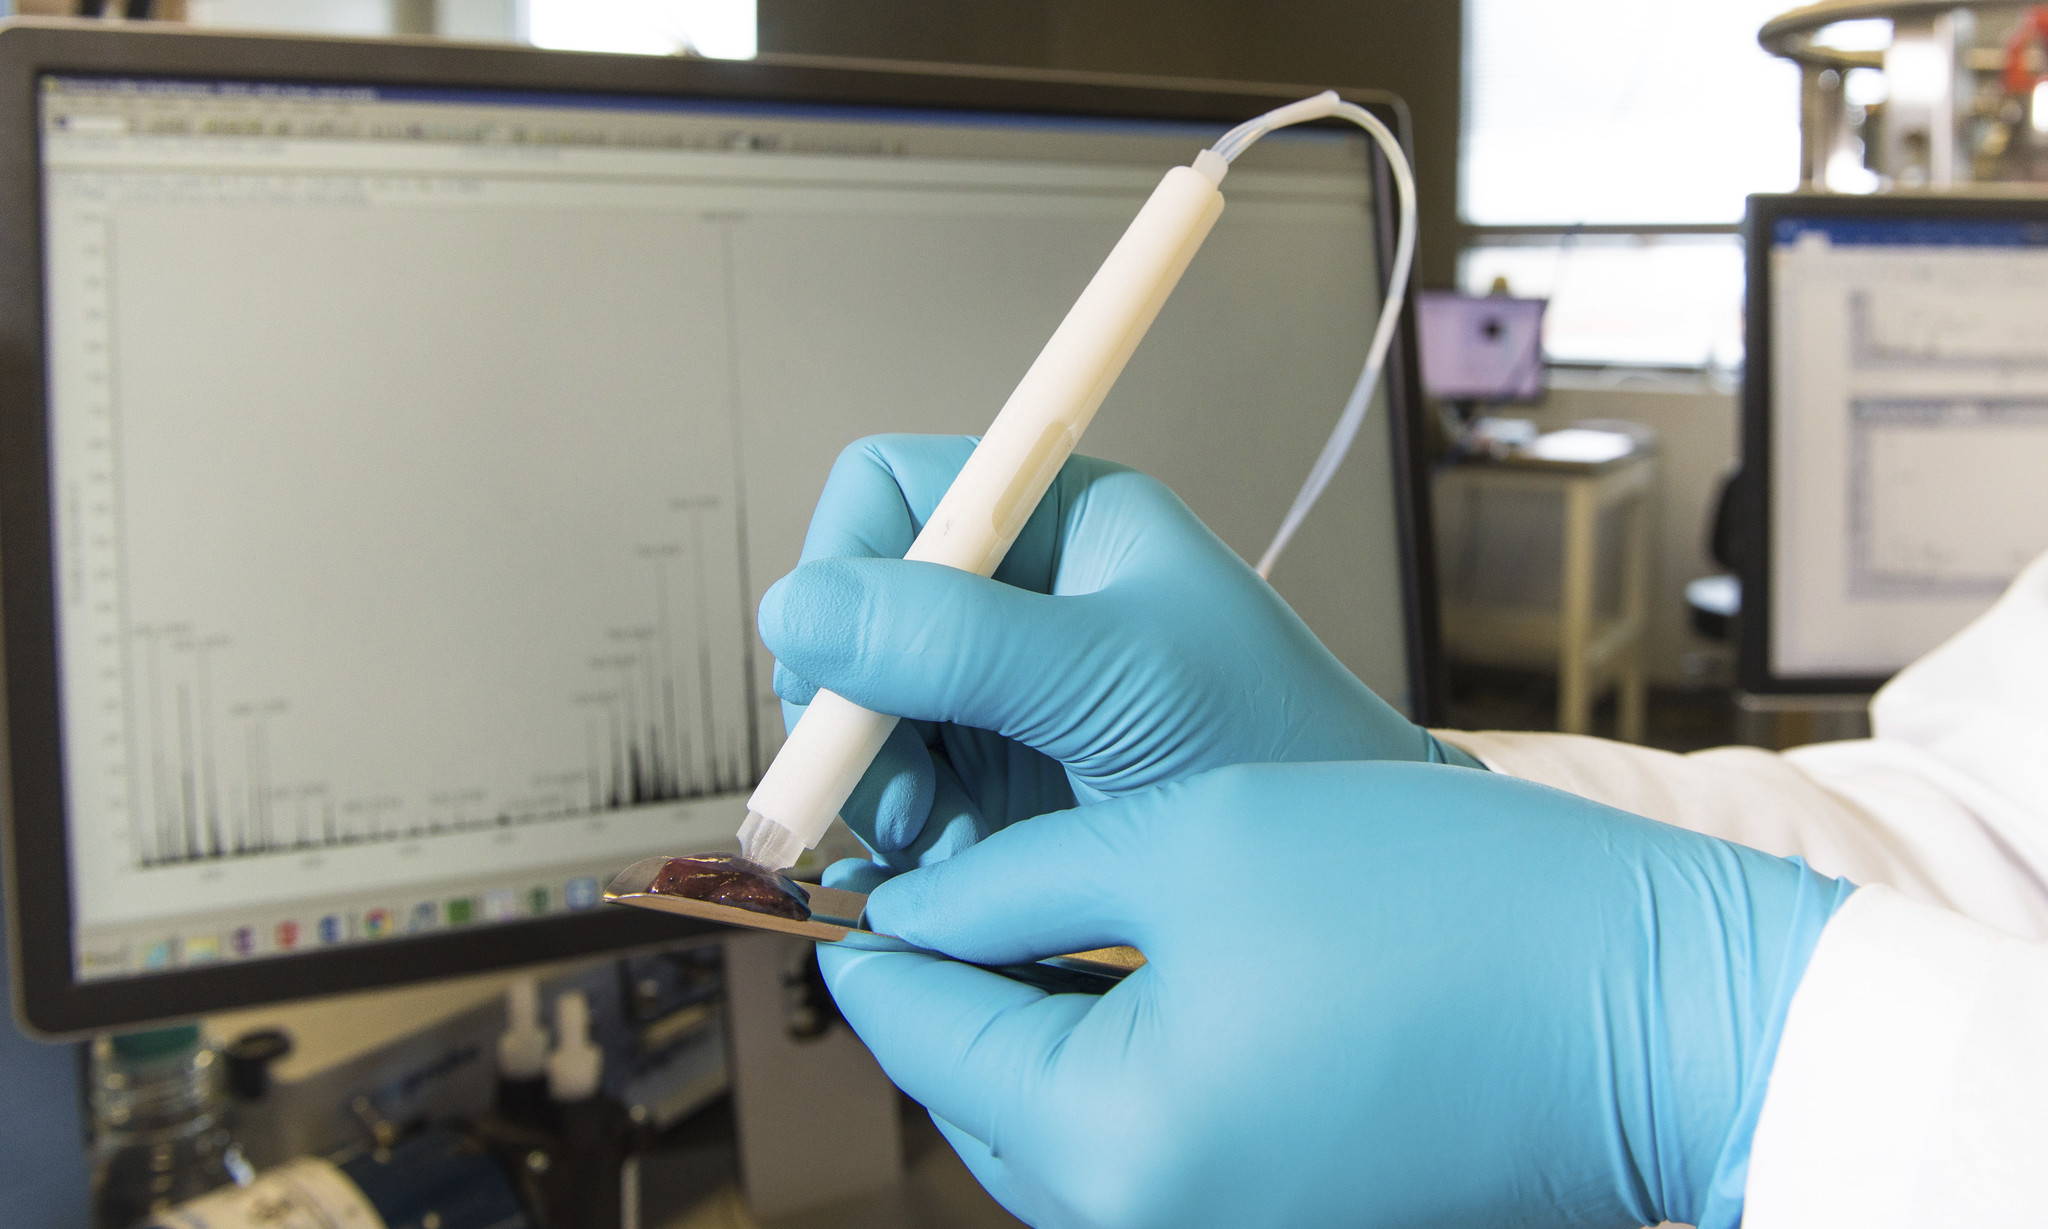 Cancer pen could help surgeons detect tumors in seconds